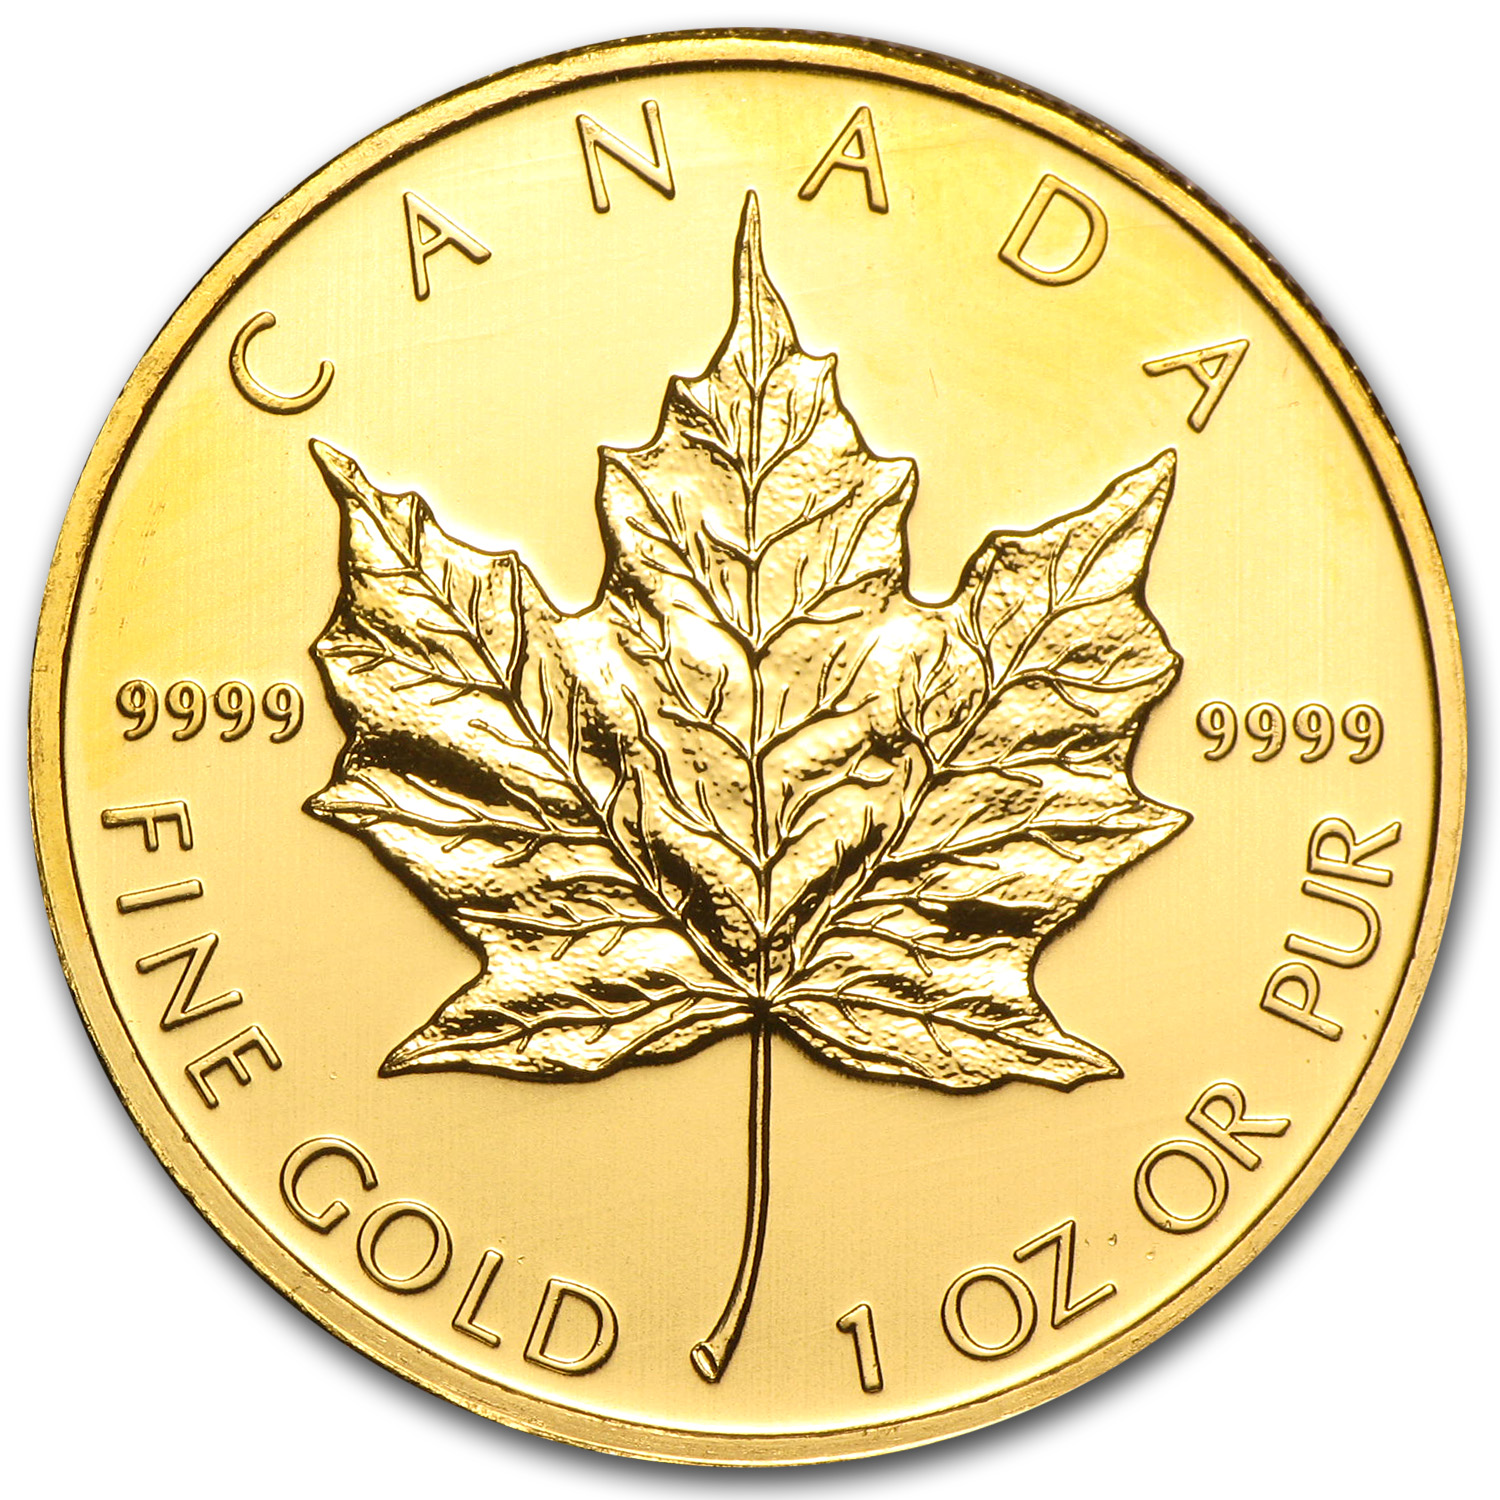 2010 1 oz Gold Canadian Maple Leaf BU